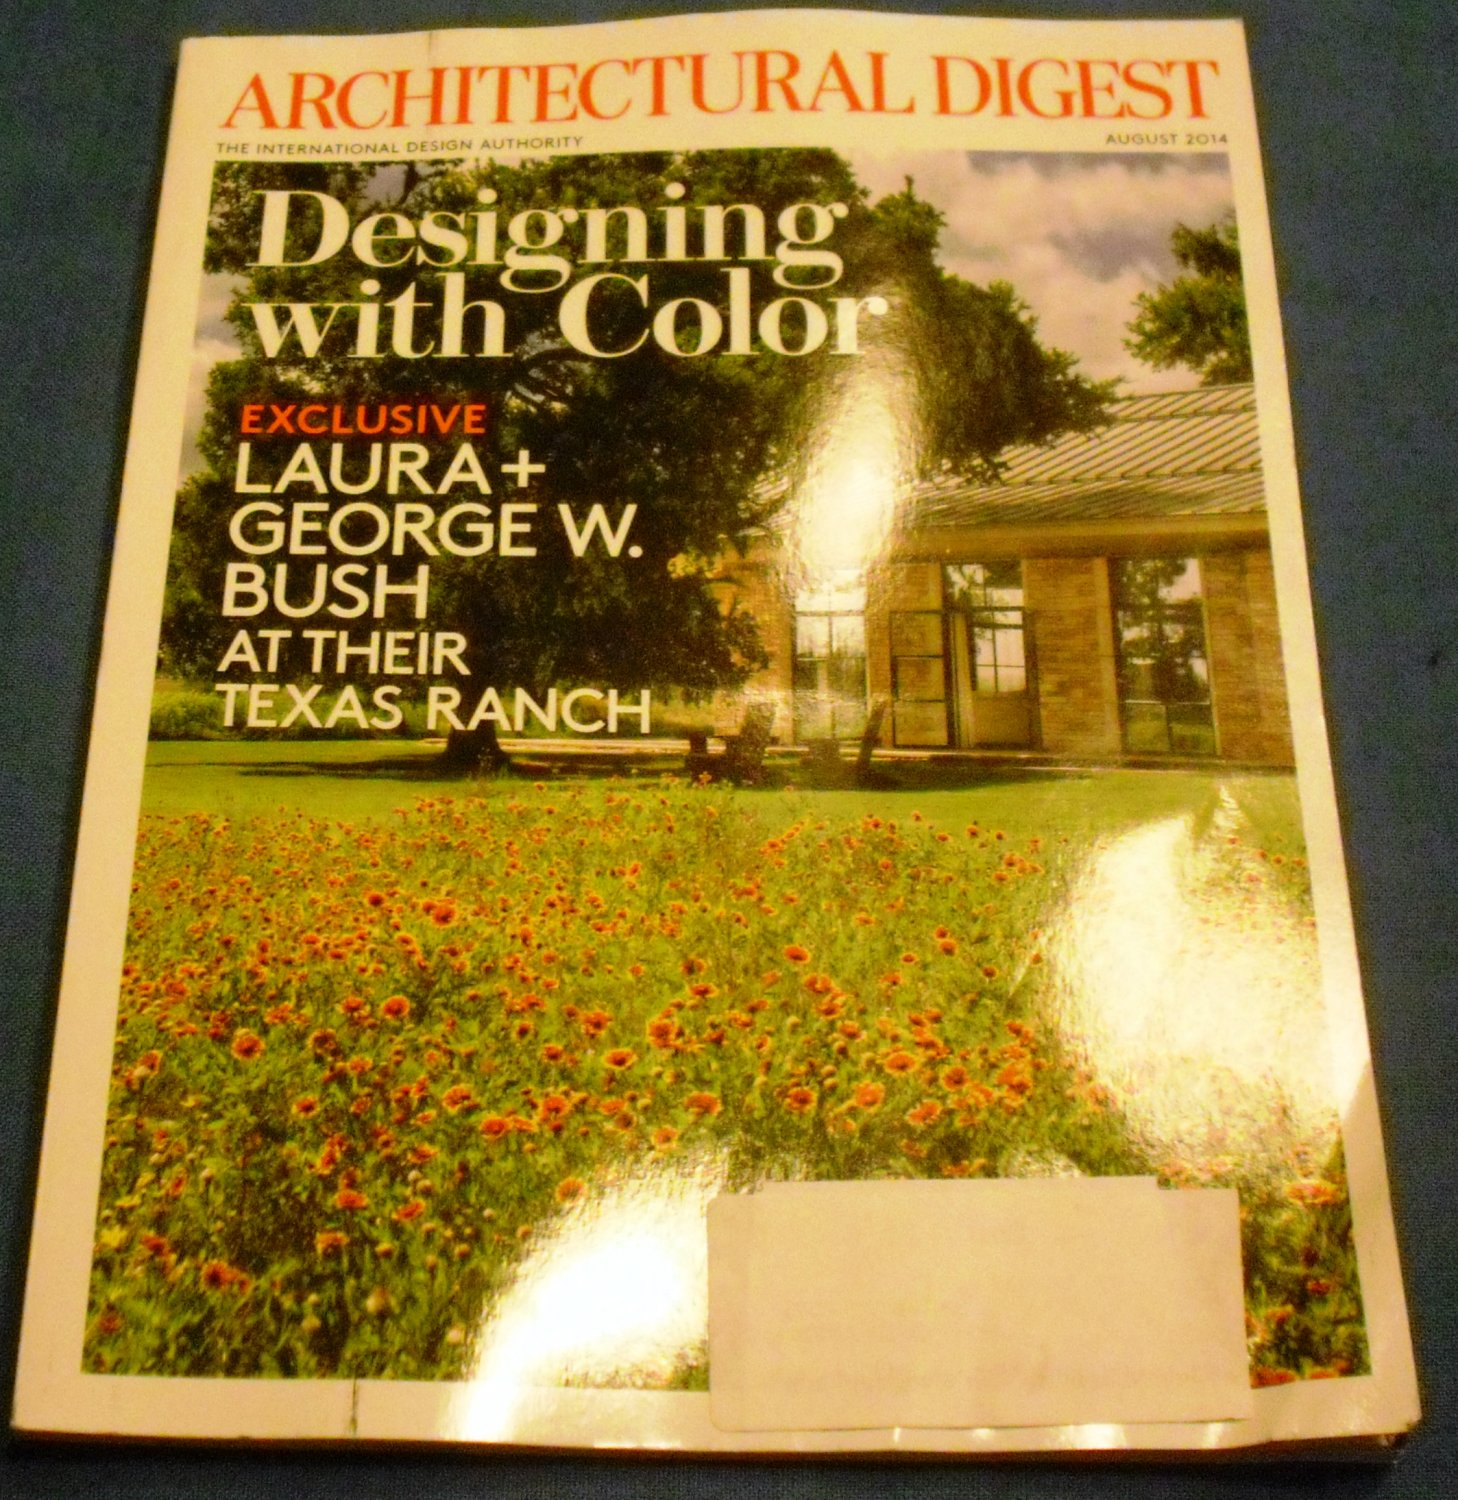 Architectural Digest August 2014 Designing with Color